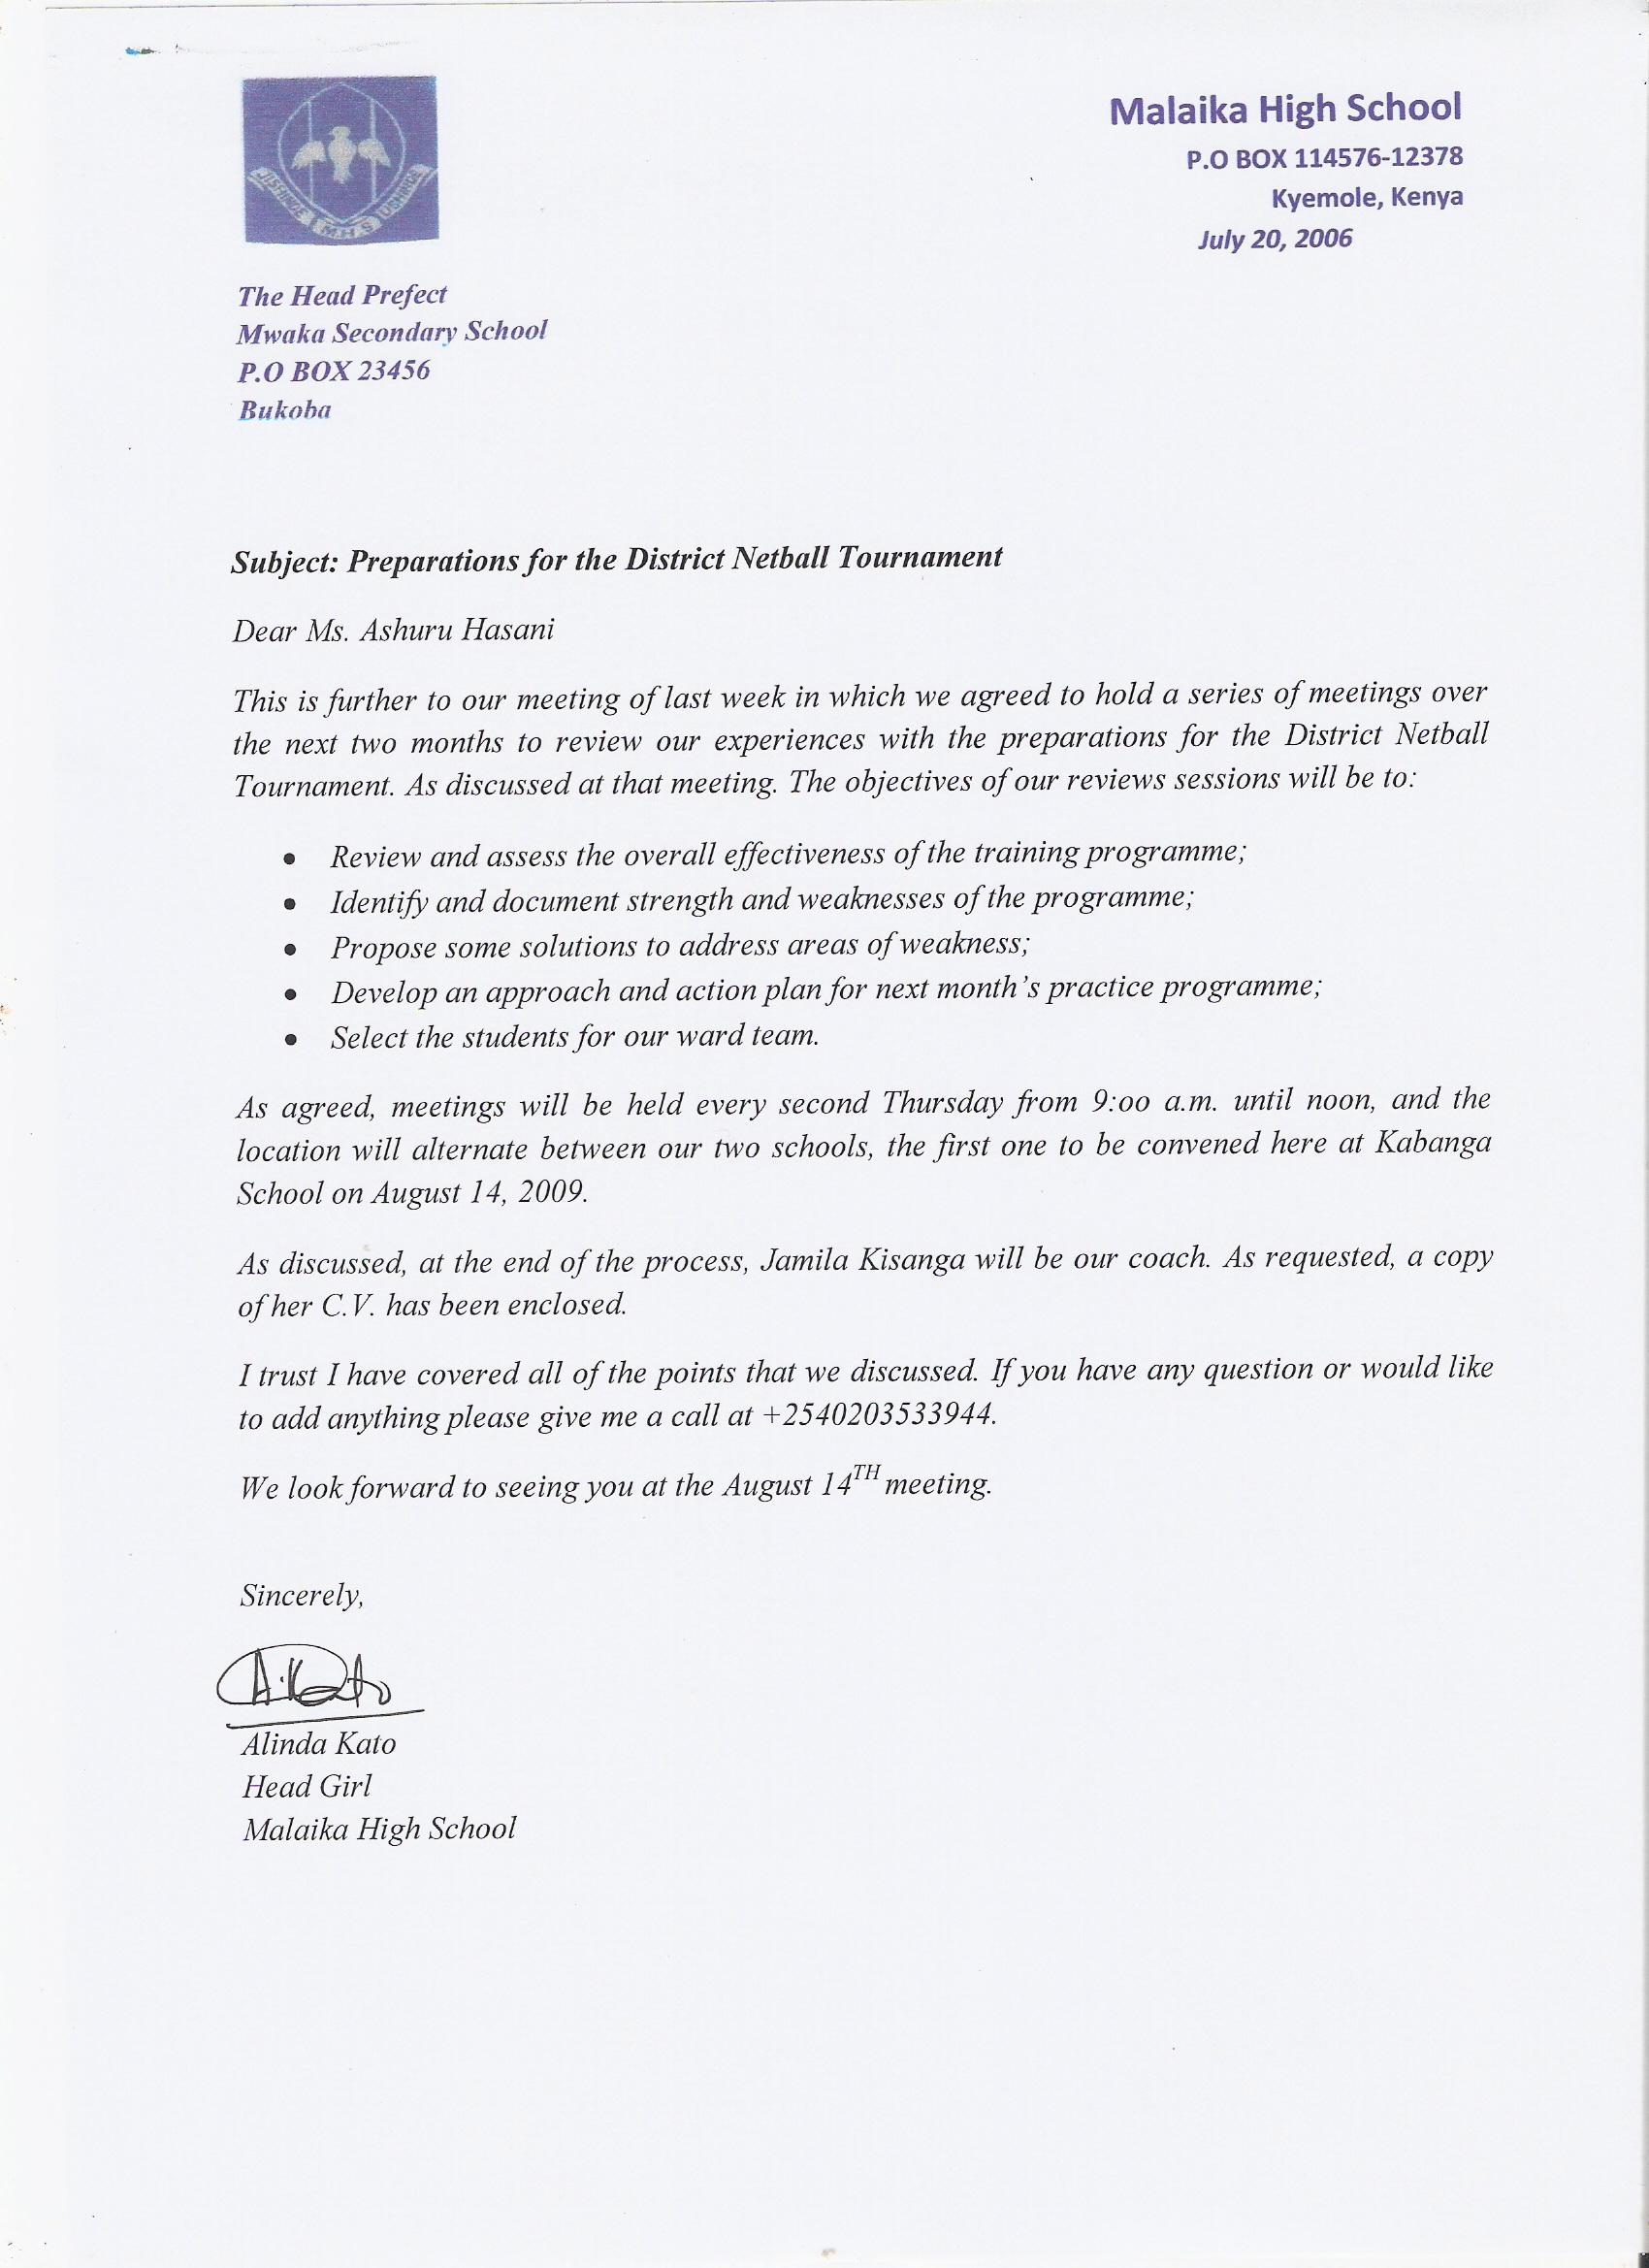 How to write an effective letter of complaint how to write a writing a letter of complaint to a company unit writing for unit 3 writing for effective spiritdancerdesigns